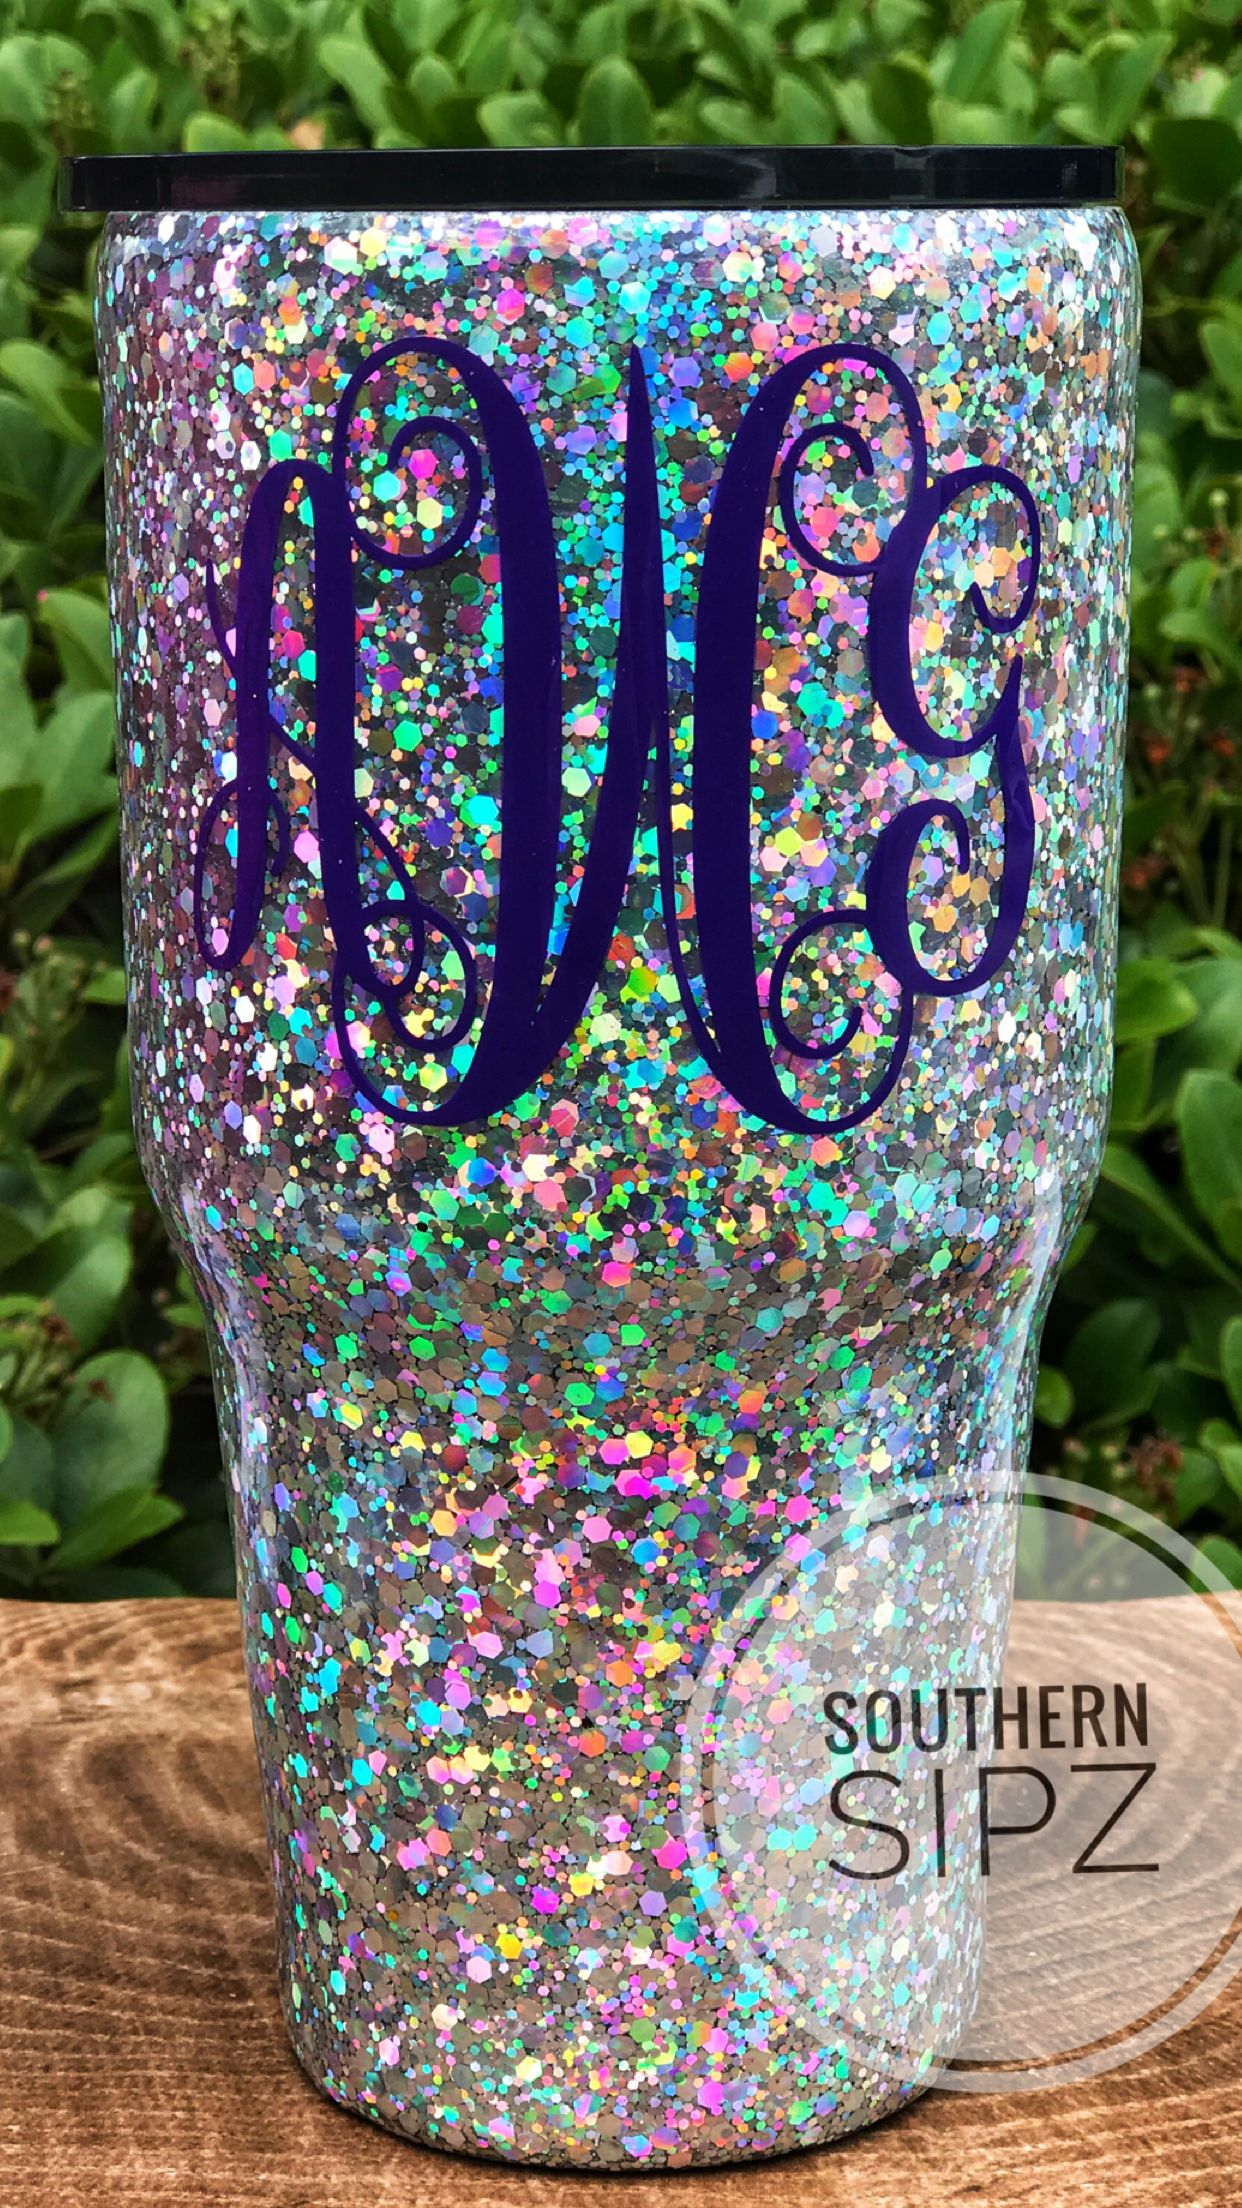 Southernsipz Tumblers Tumblr Cup Glitter Cups Tumbler Cups